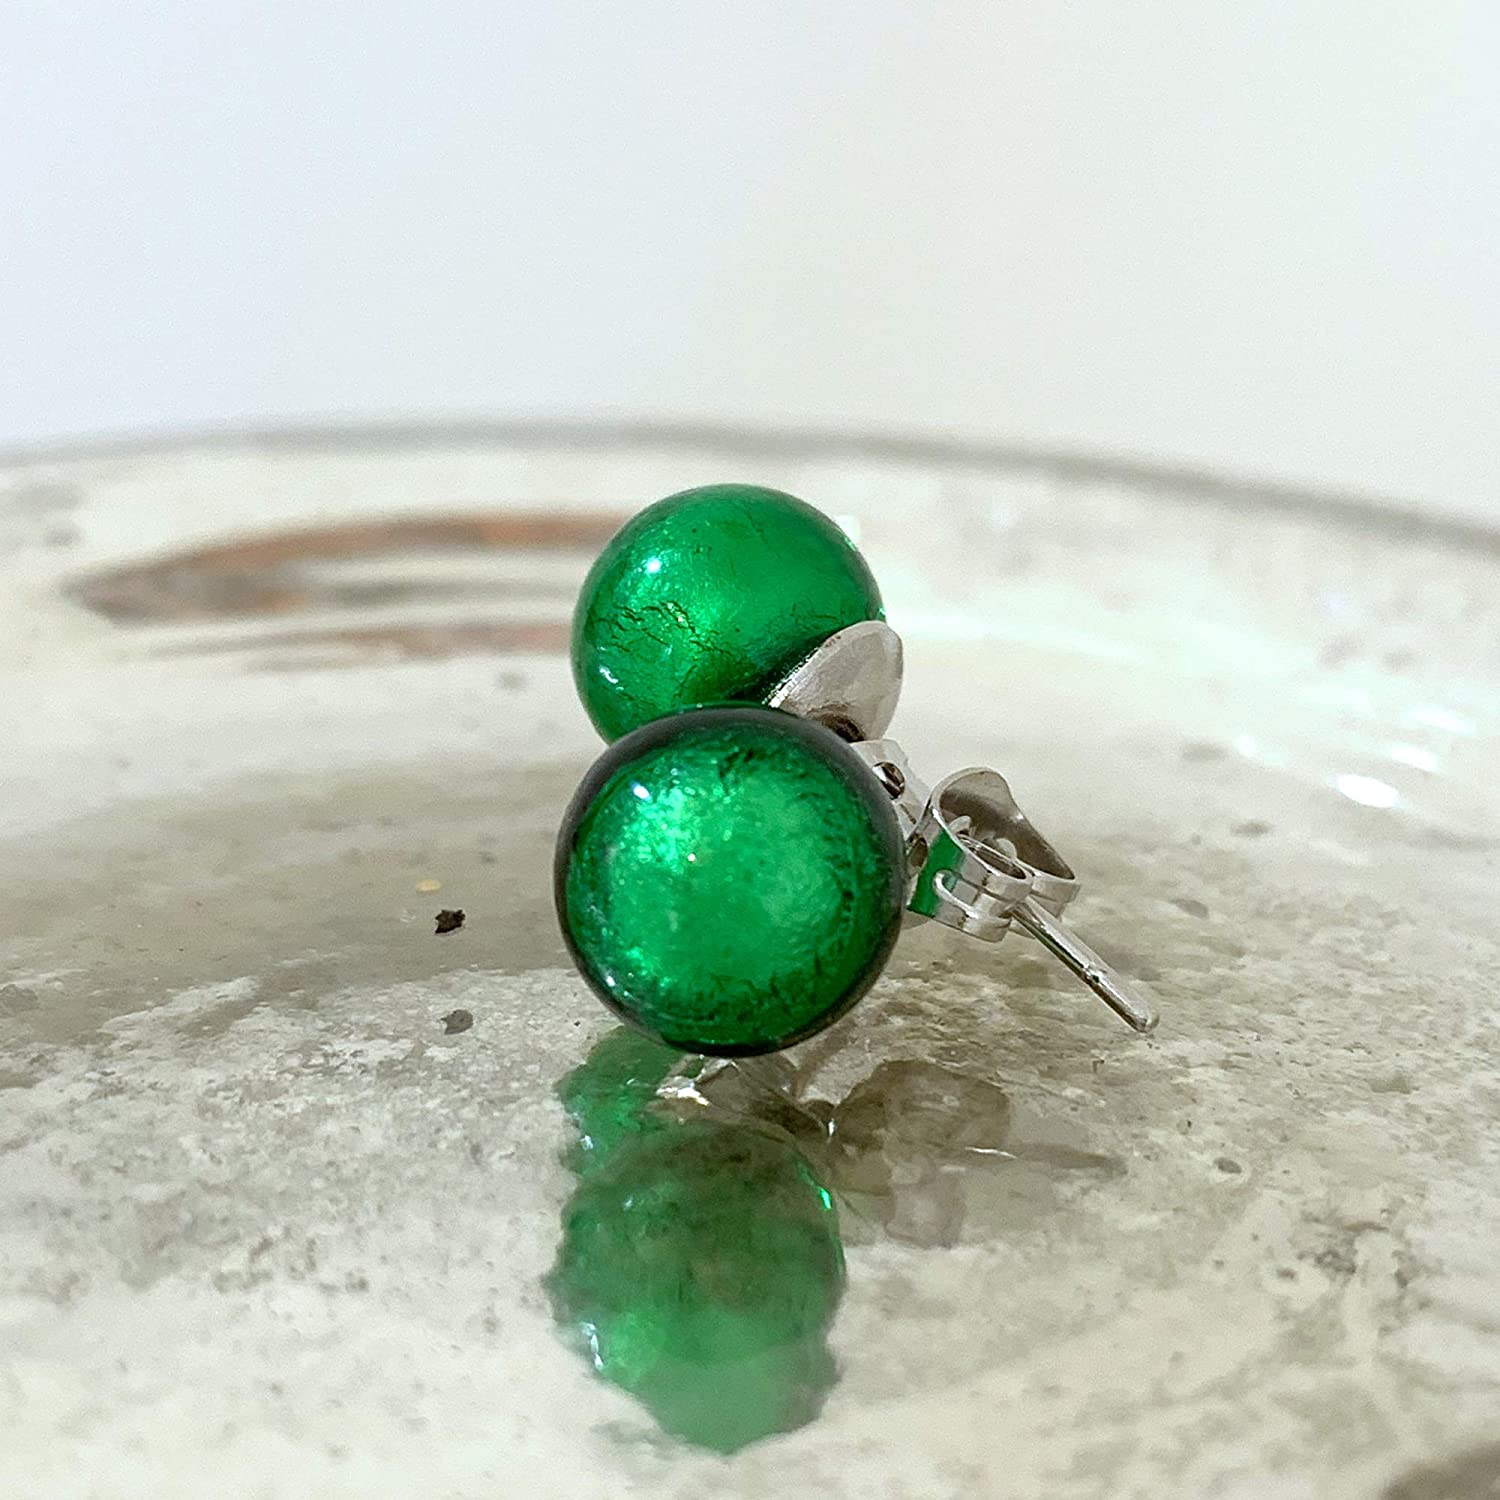 Diana Ingram earrings with dark green round emerald studs on surgical steel posts Murano glass sphere